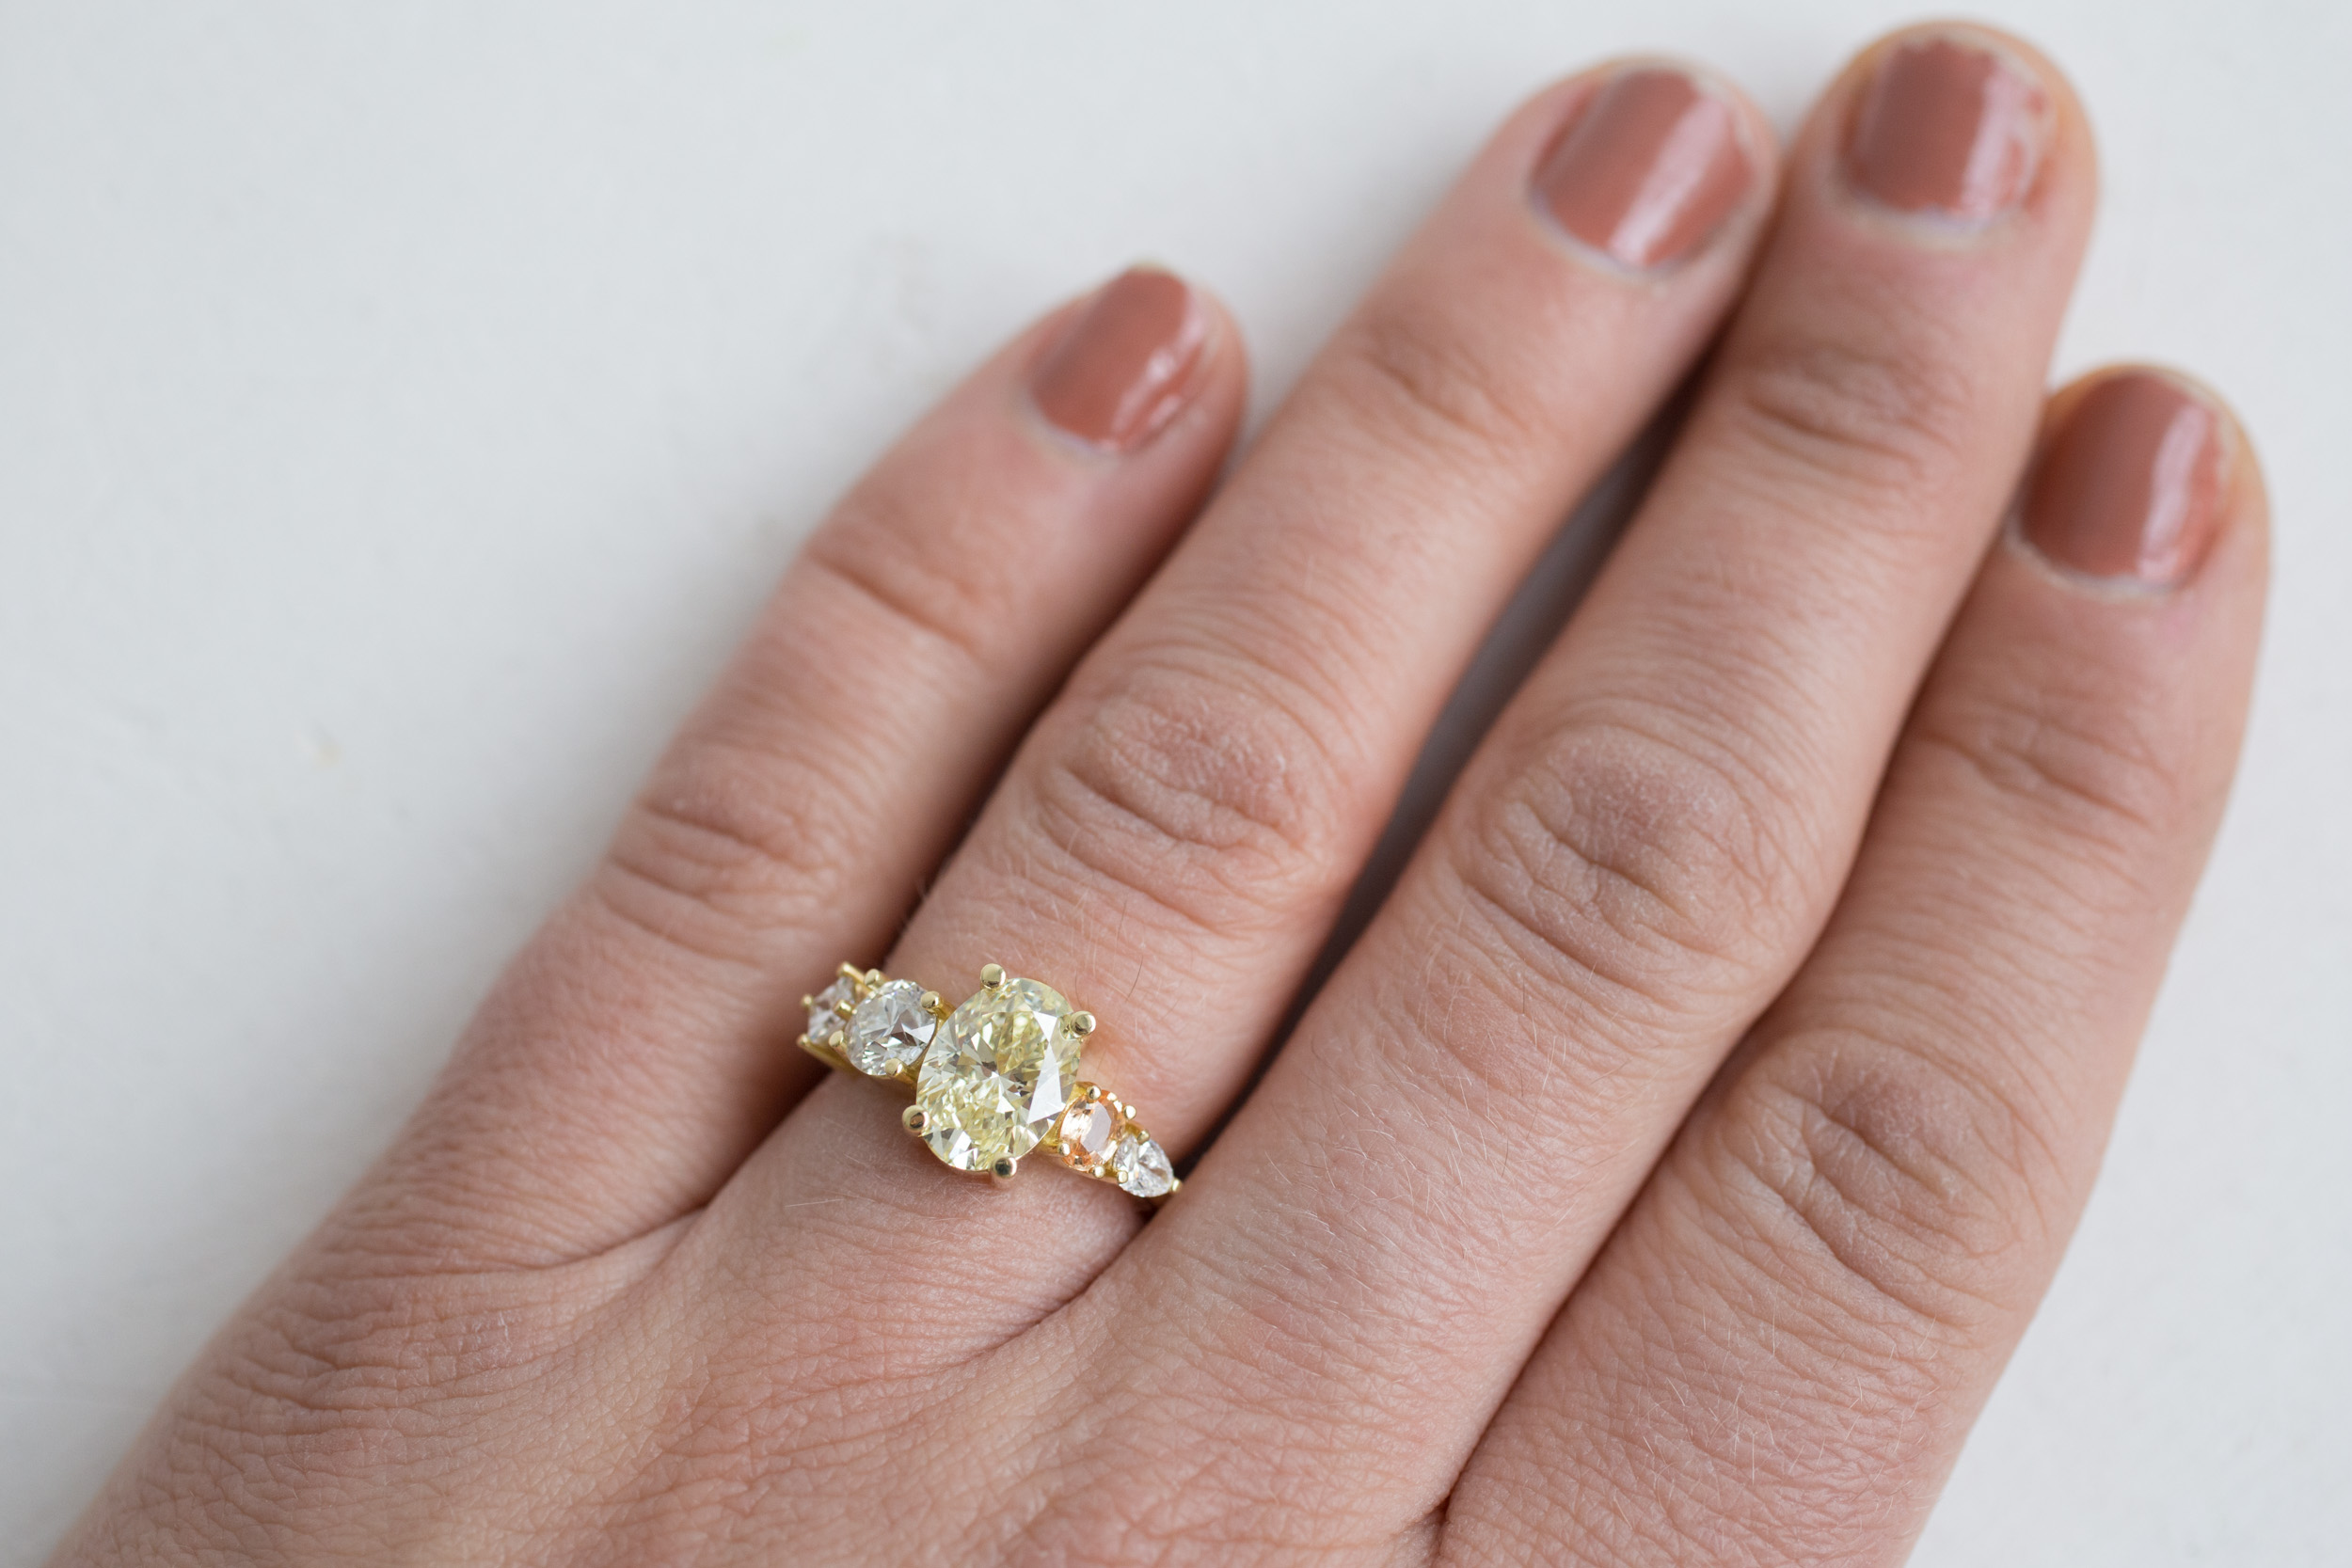 Roger + Julie Yellow Oval Diamond, Peach Sapphire + Diamond Accent Custom Engagement Ring-12.jpg